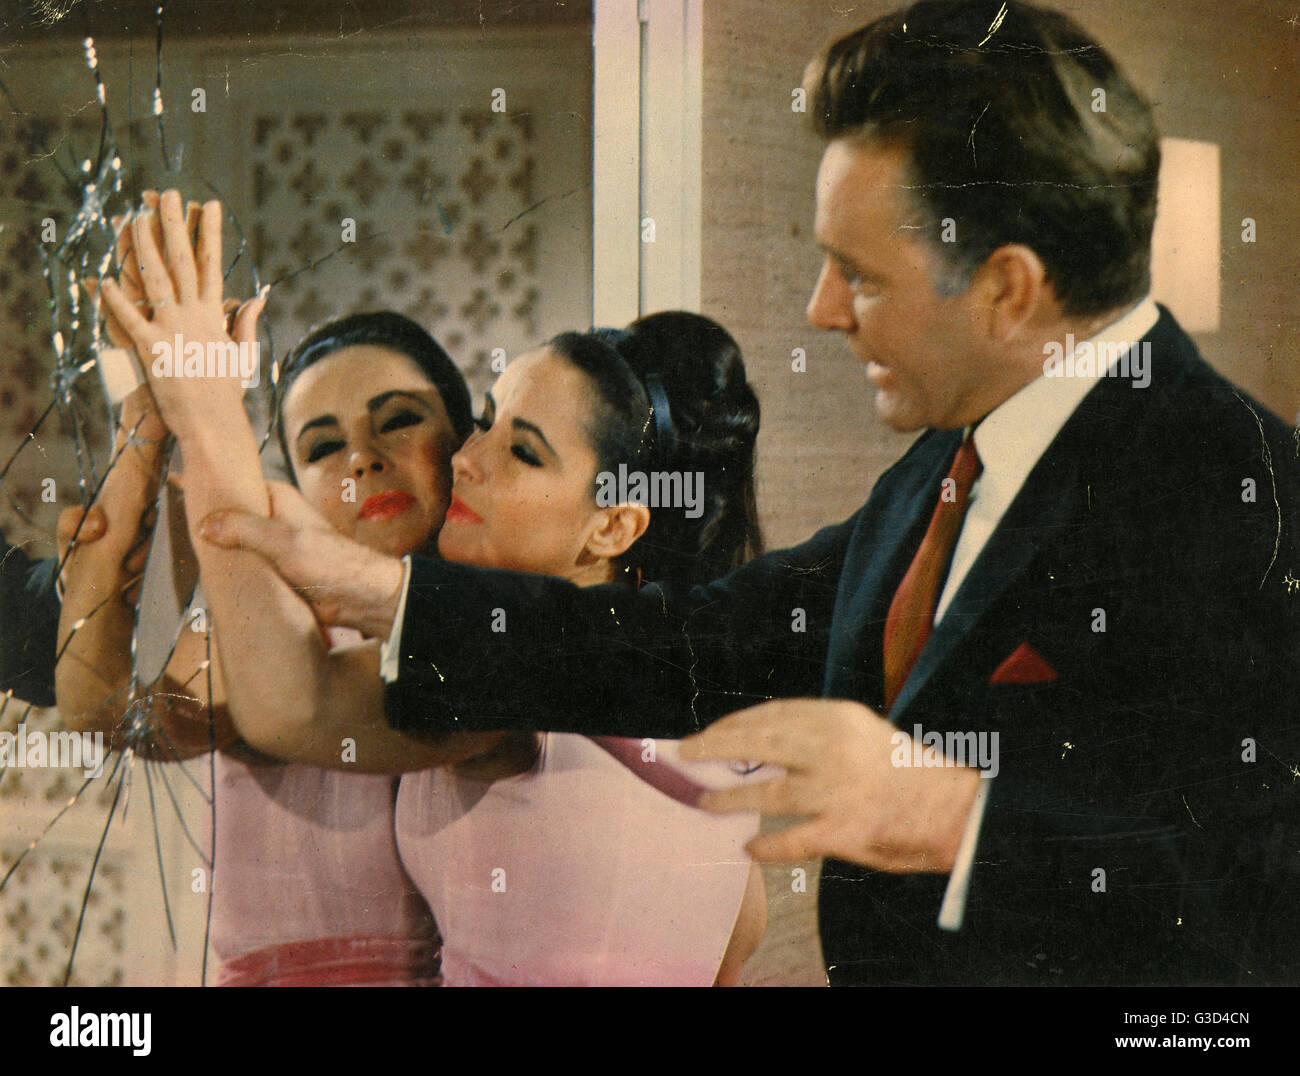 The V.I.P.s (directed by Anthony Asquith) starring Elizabeth Taylor and Richard Burton (pictured).     Date: 1963 - Stock Image